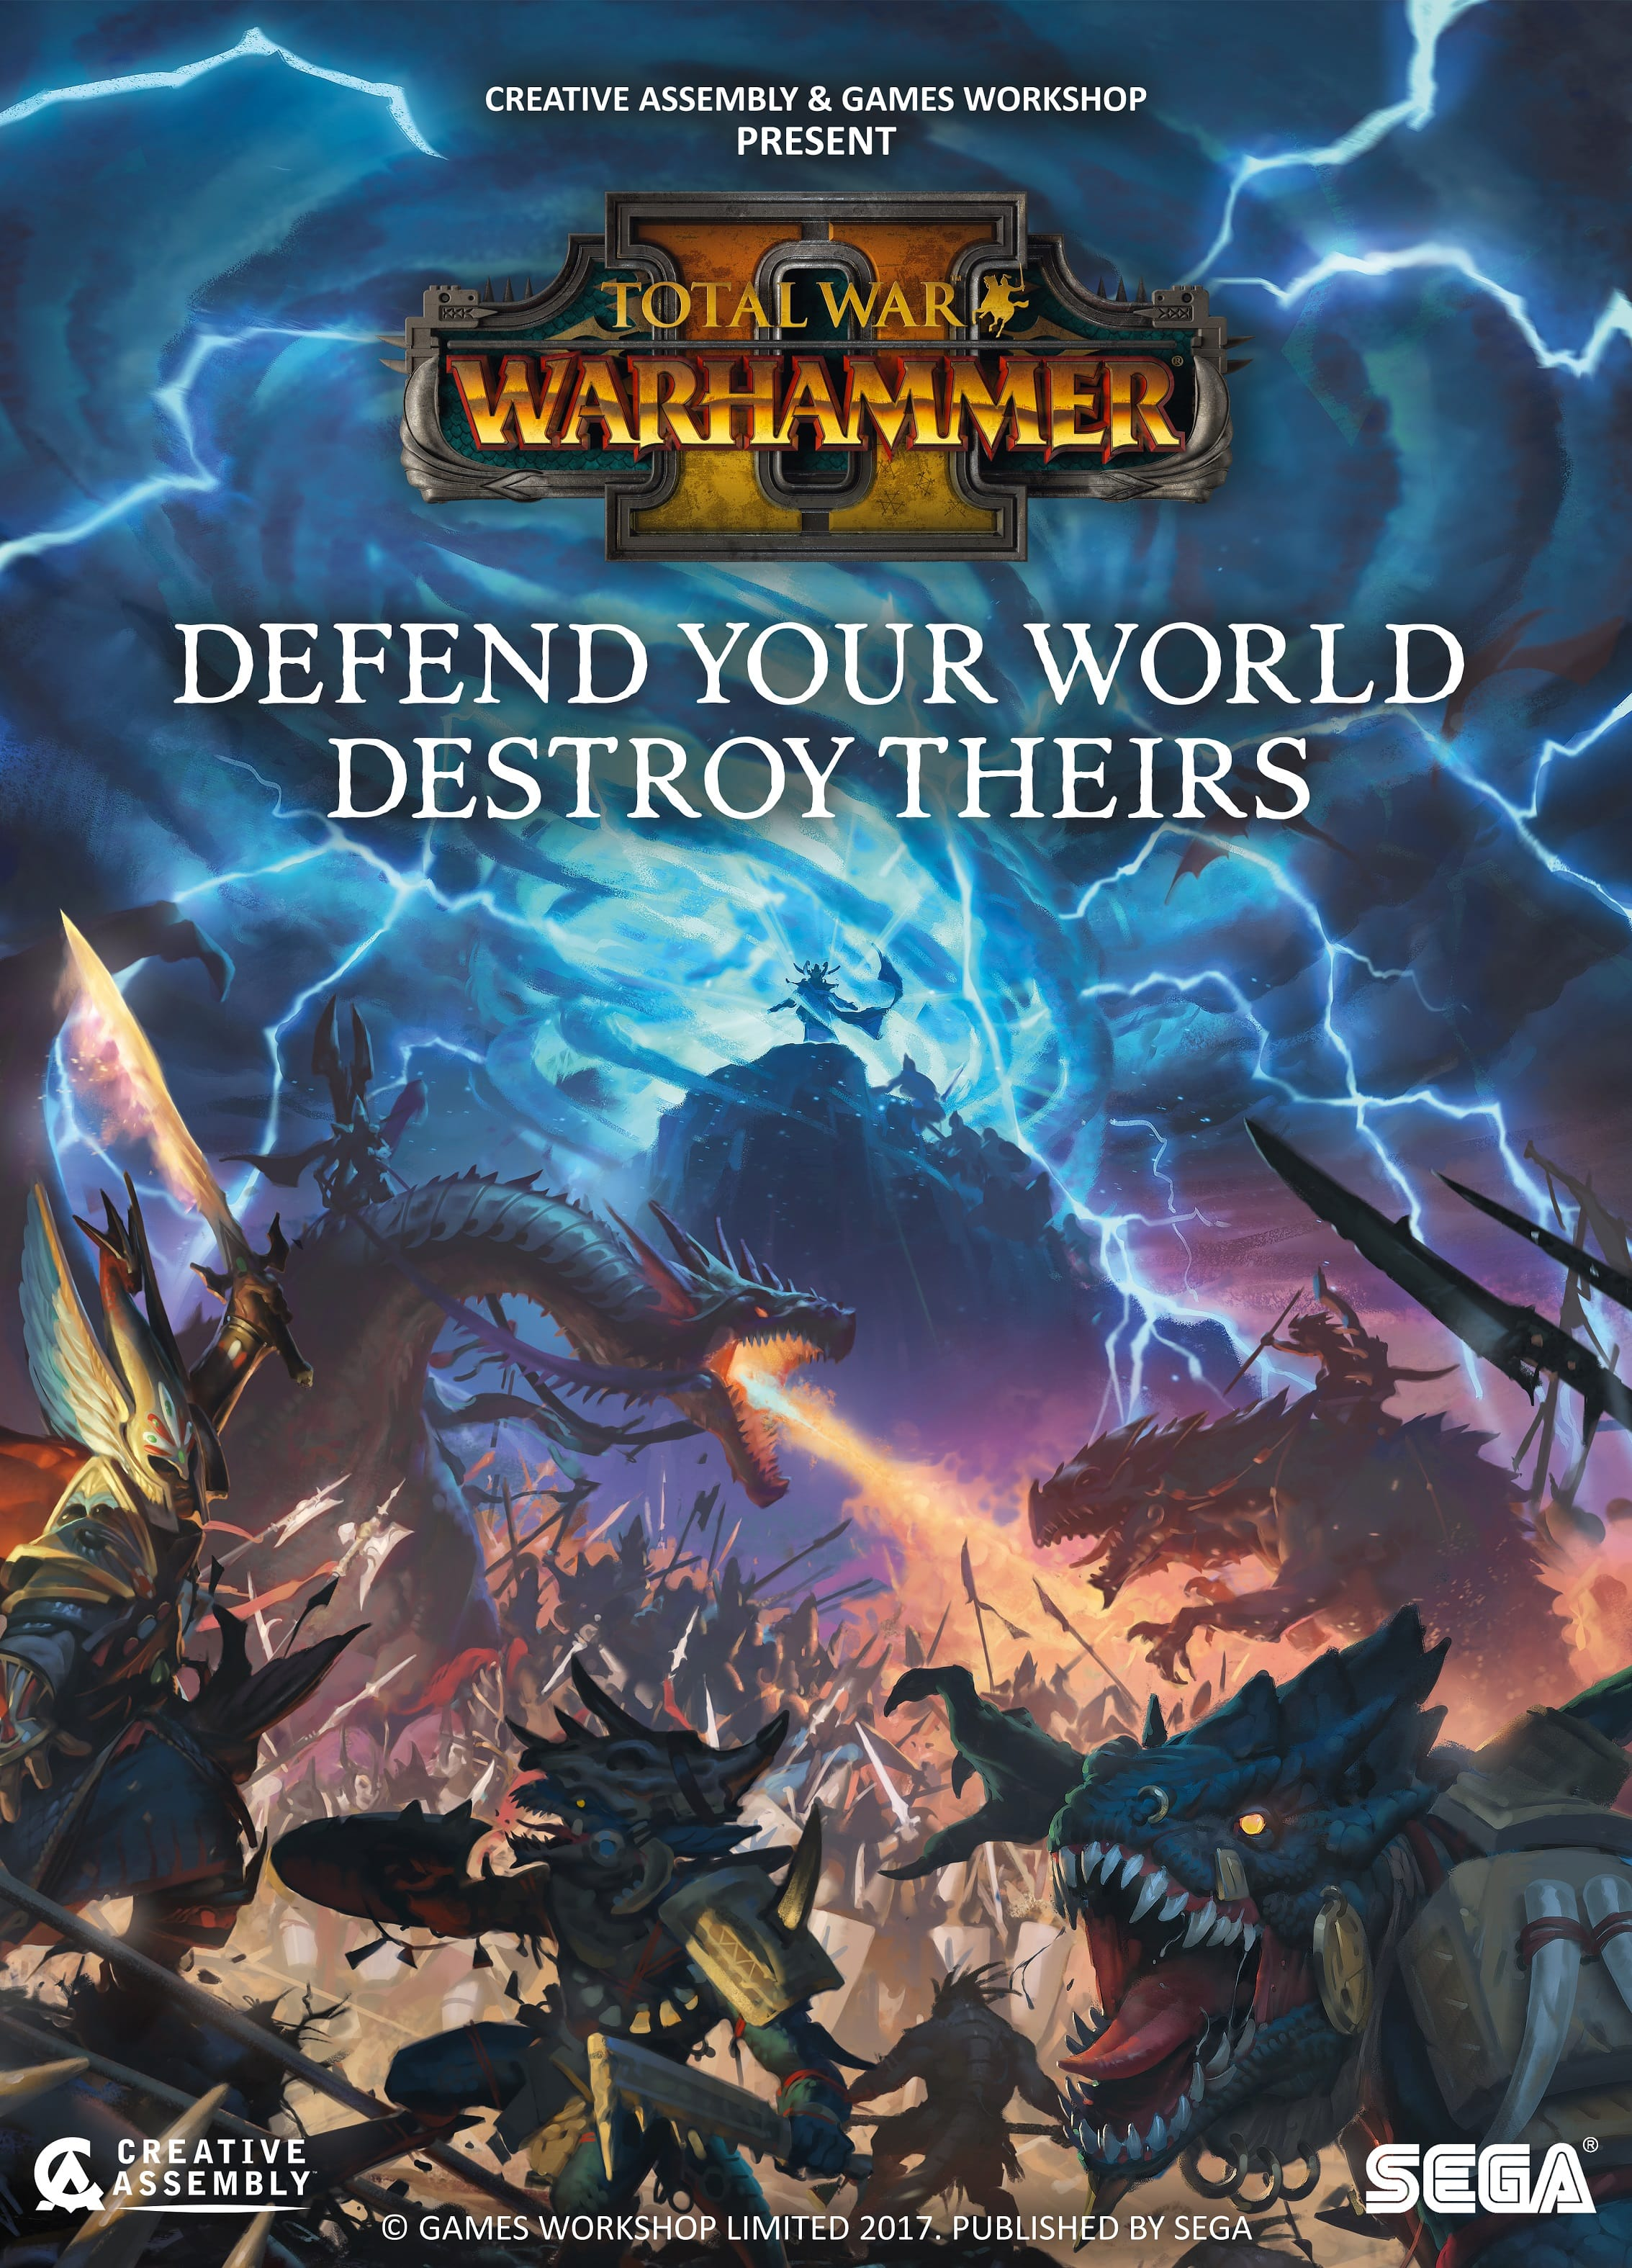 The WARHAMMER II Key Art Poster - Total War